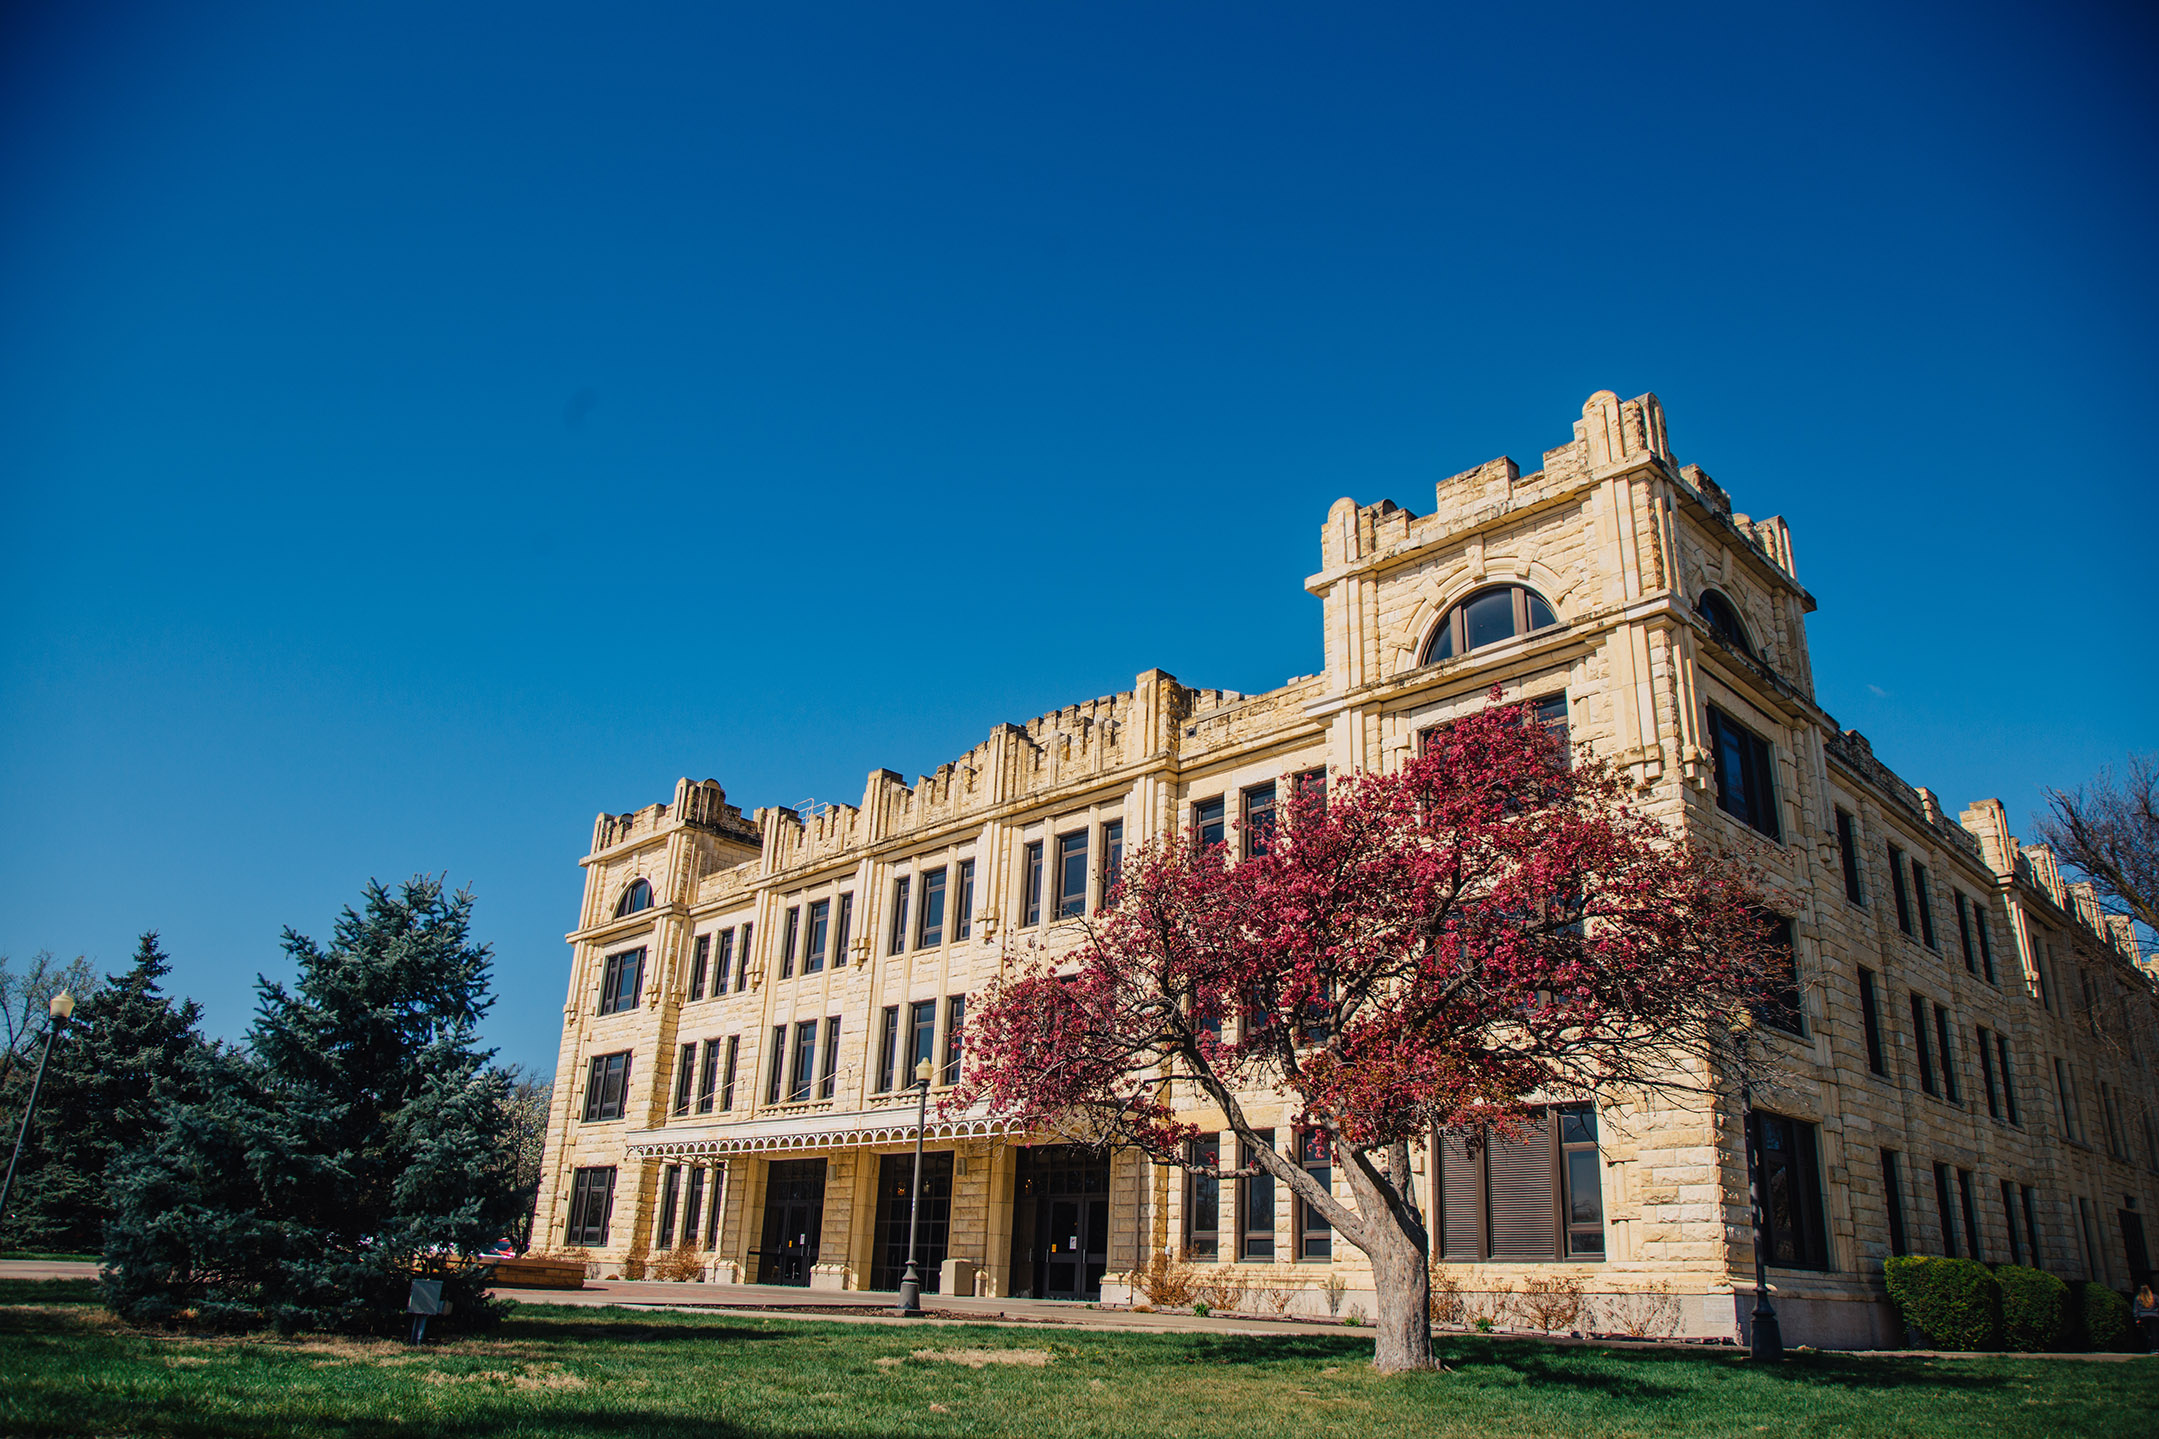 Fhsu Fall 2021 Calendar FHSU Announces 2020 2021 Academic and Residence Life Reopening